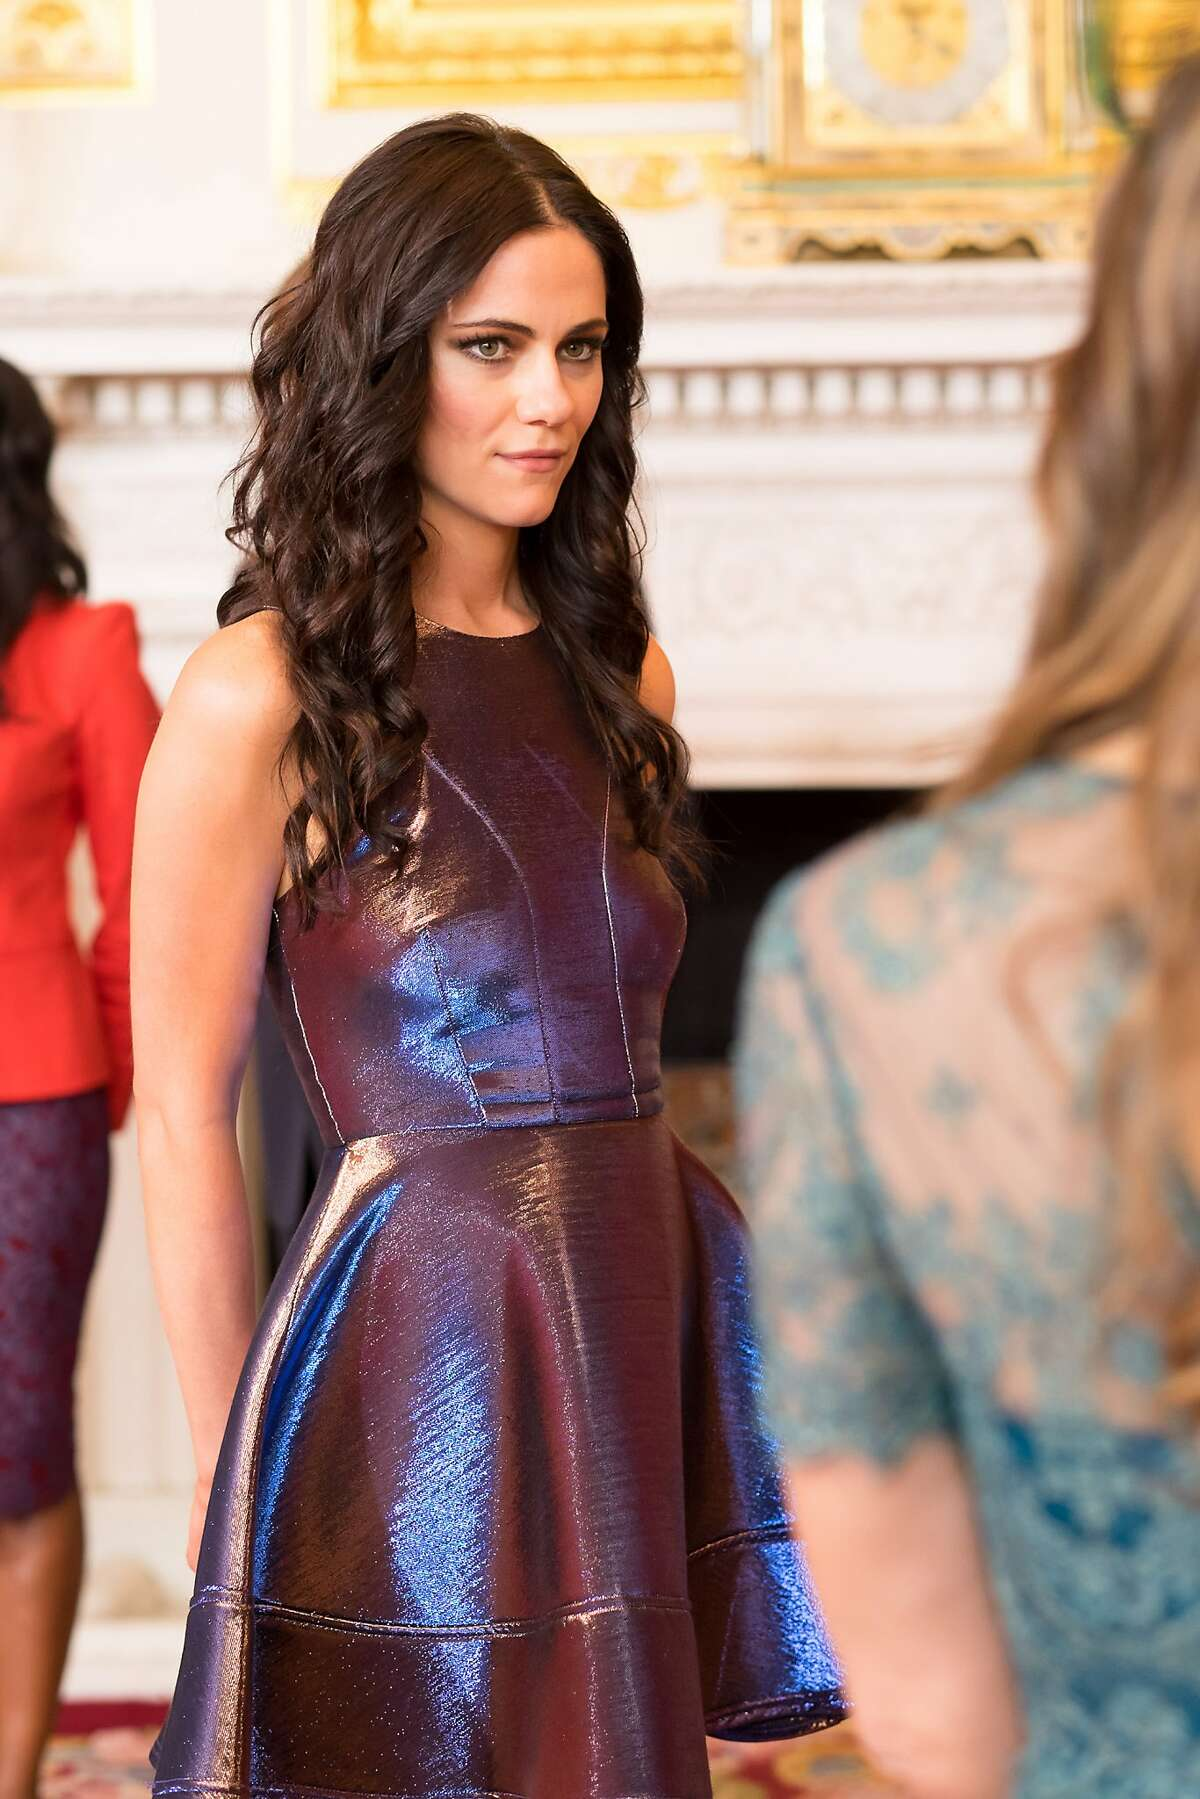 THE ROYALS -- Episode 102 -- Pictured: Alexandra Park as Princess Eleanor -- (Photo by: Jim Marks/E!)